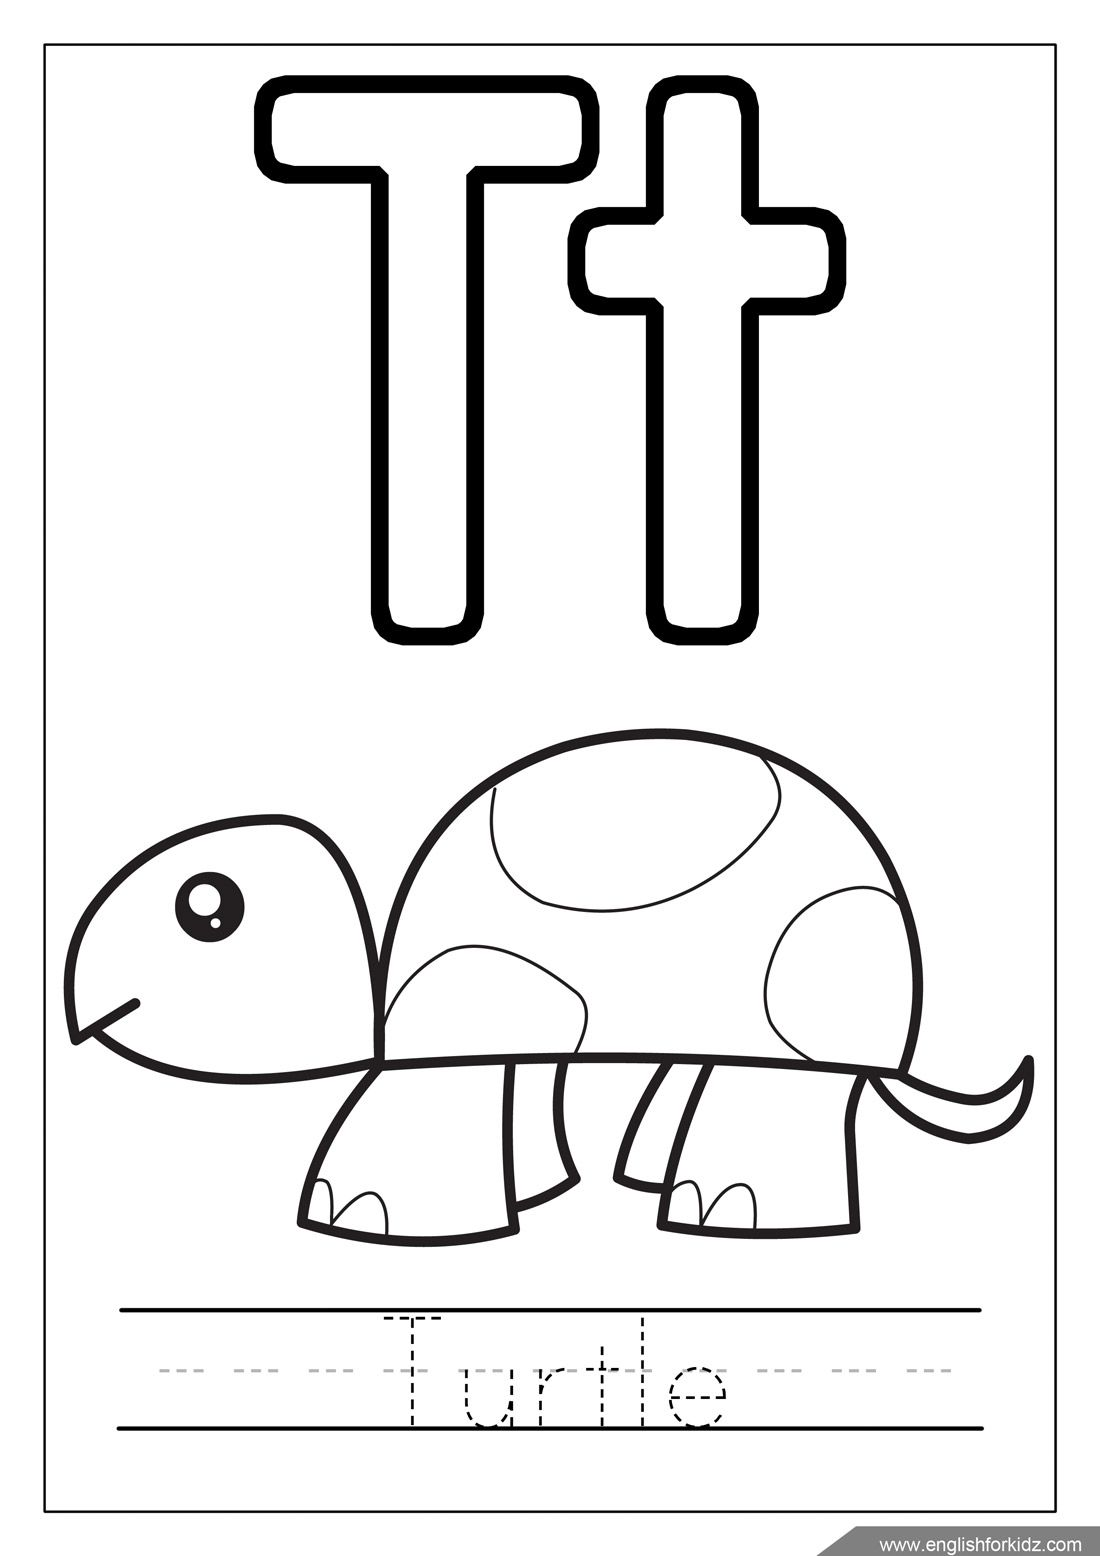 English Alphabet Coloring Page